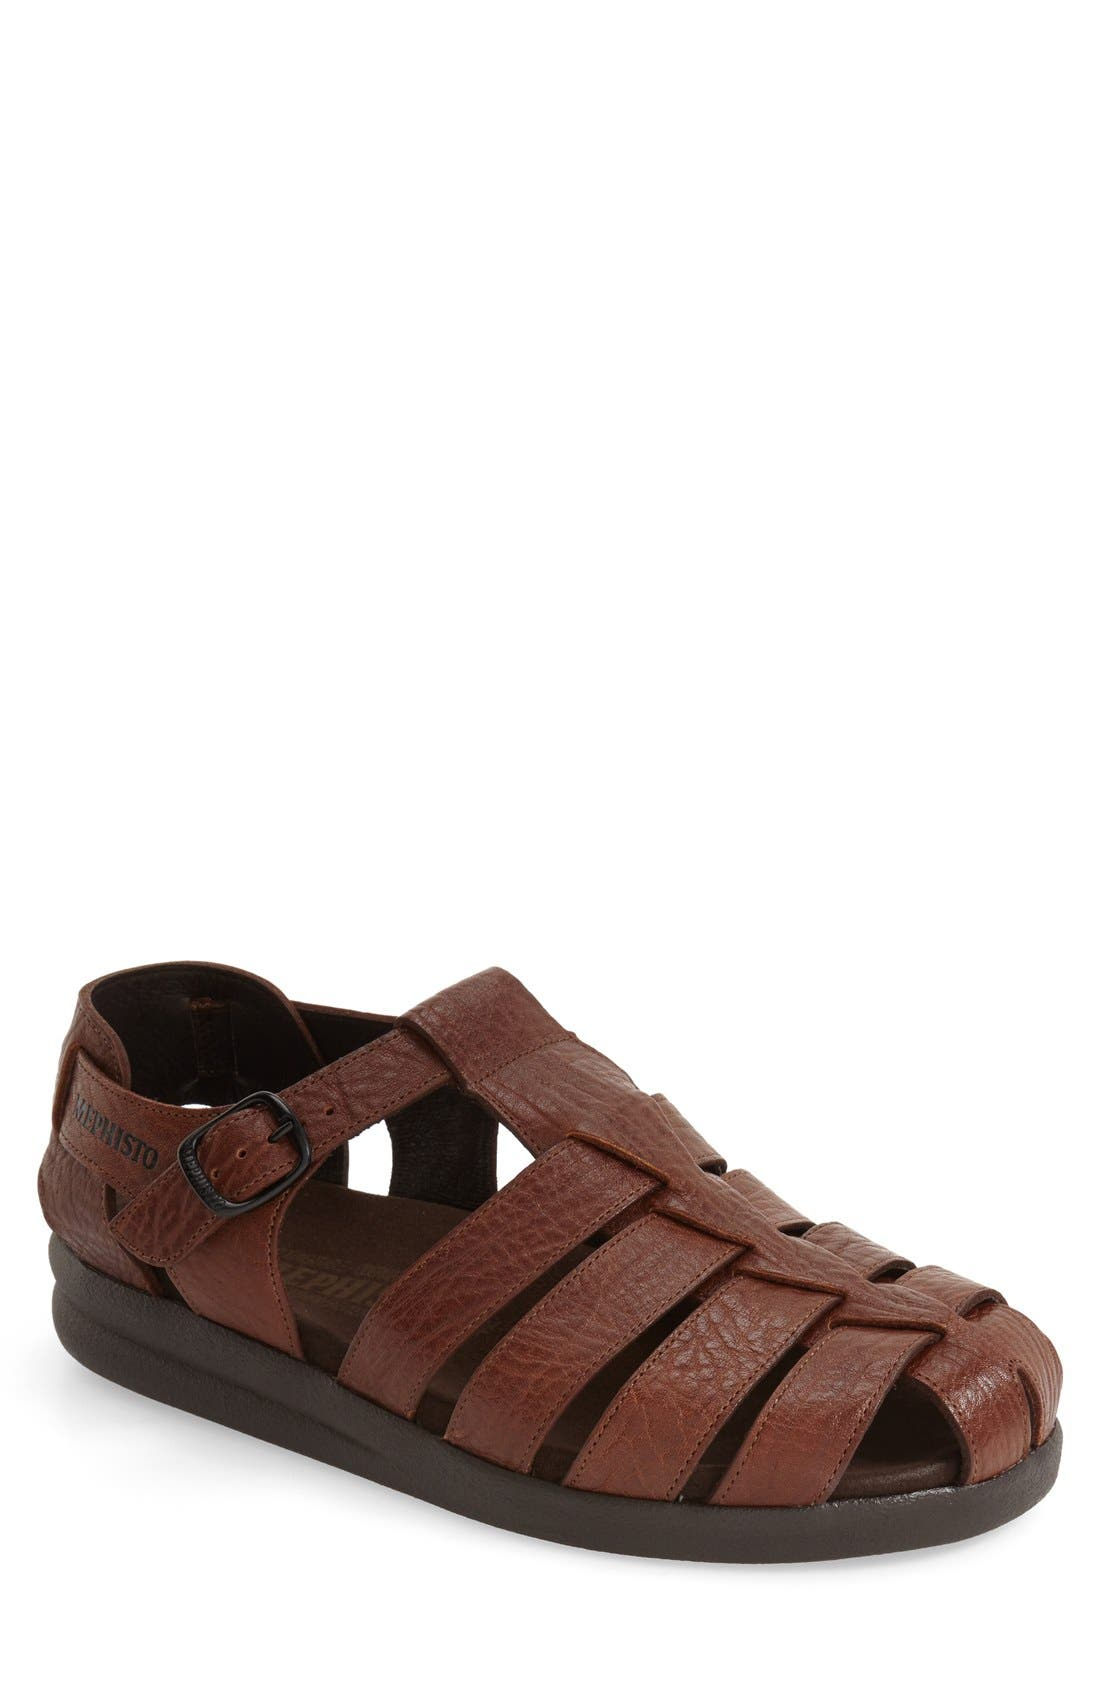 'Sam' Sandal,                             Main thumbnail 1, color,                             TAN